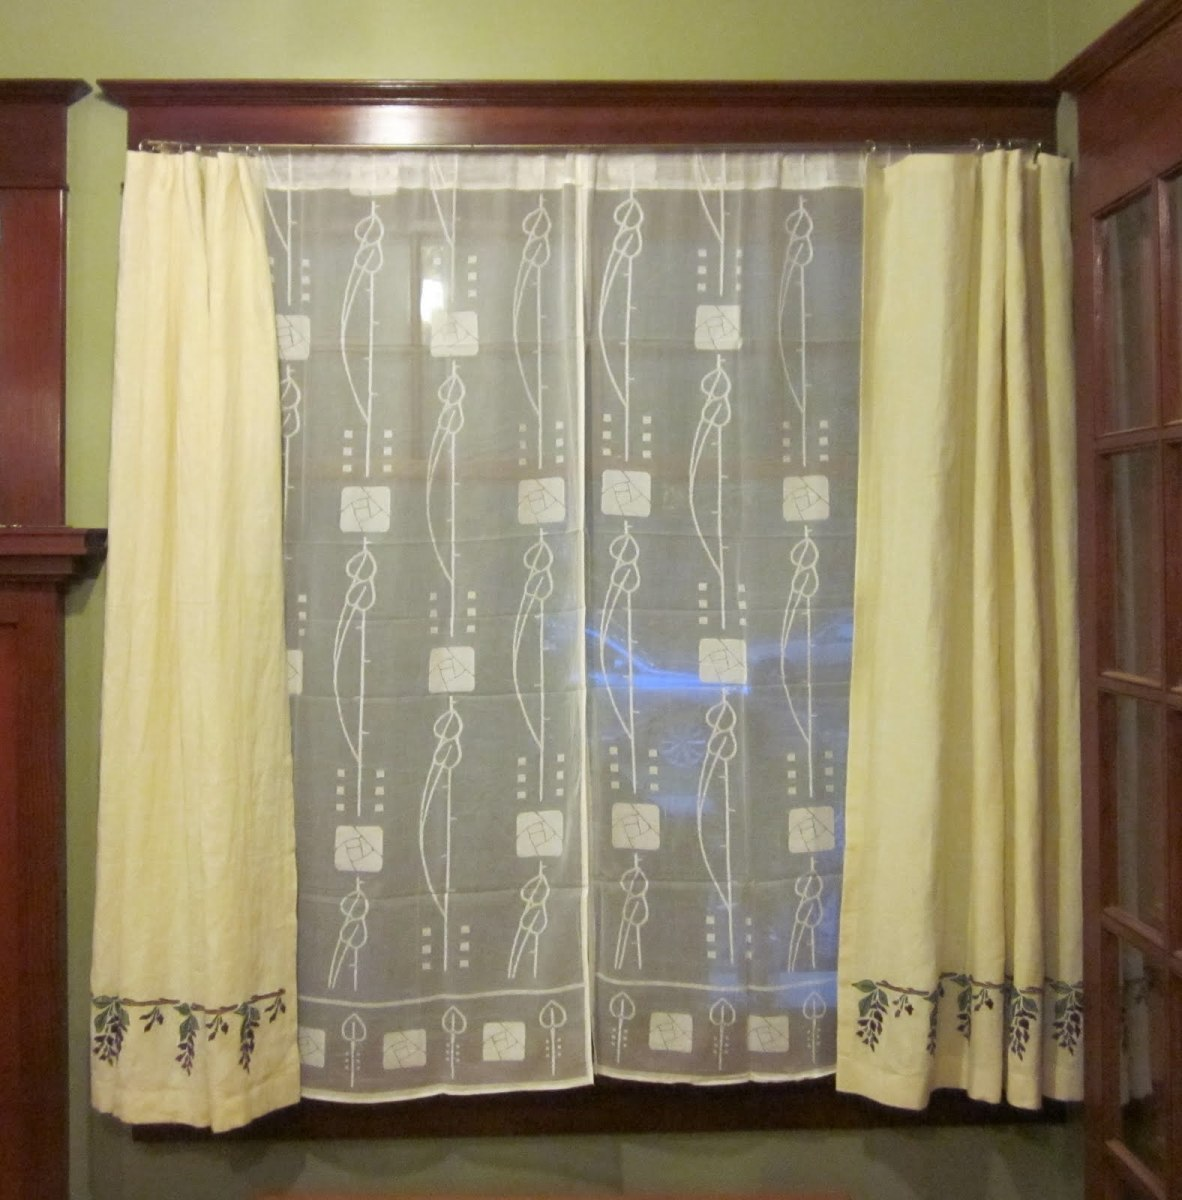 stenciled muslin panels over lace curtains